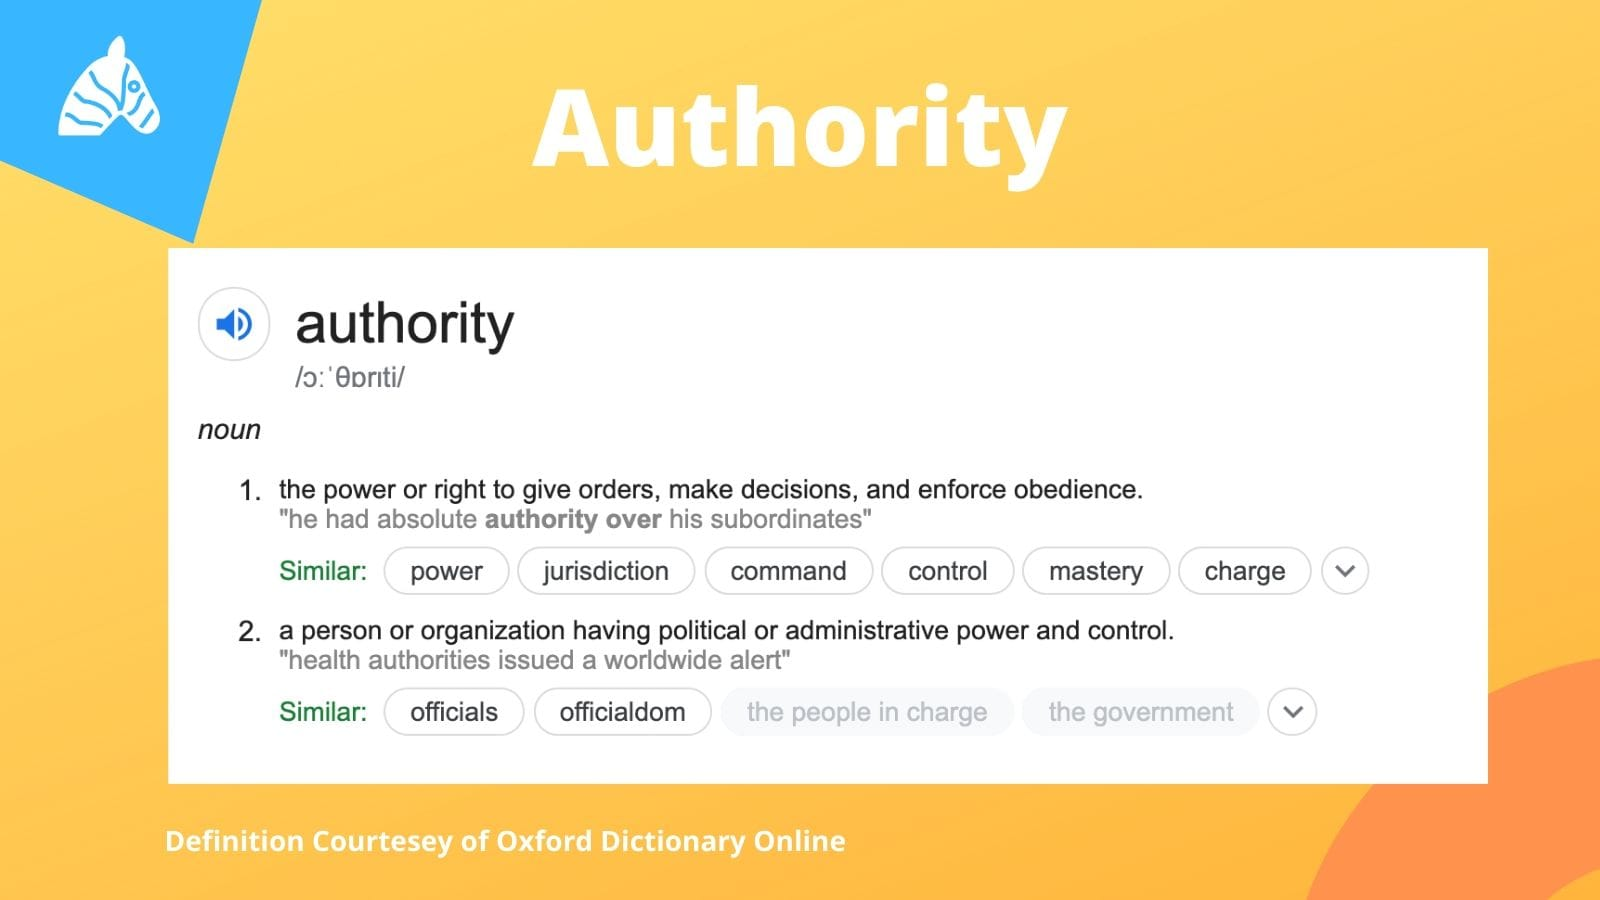 authority in the context of E-A-T acronym